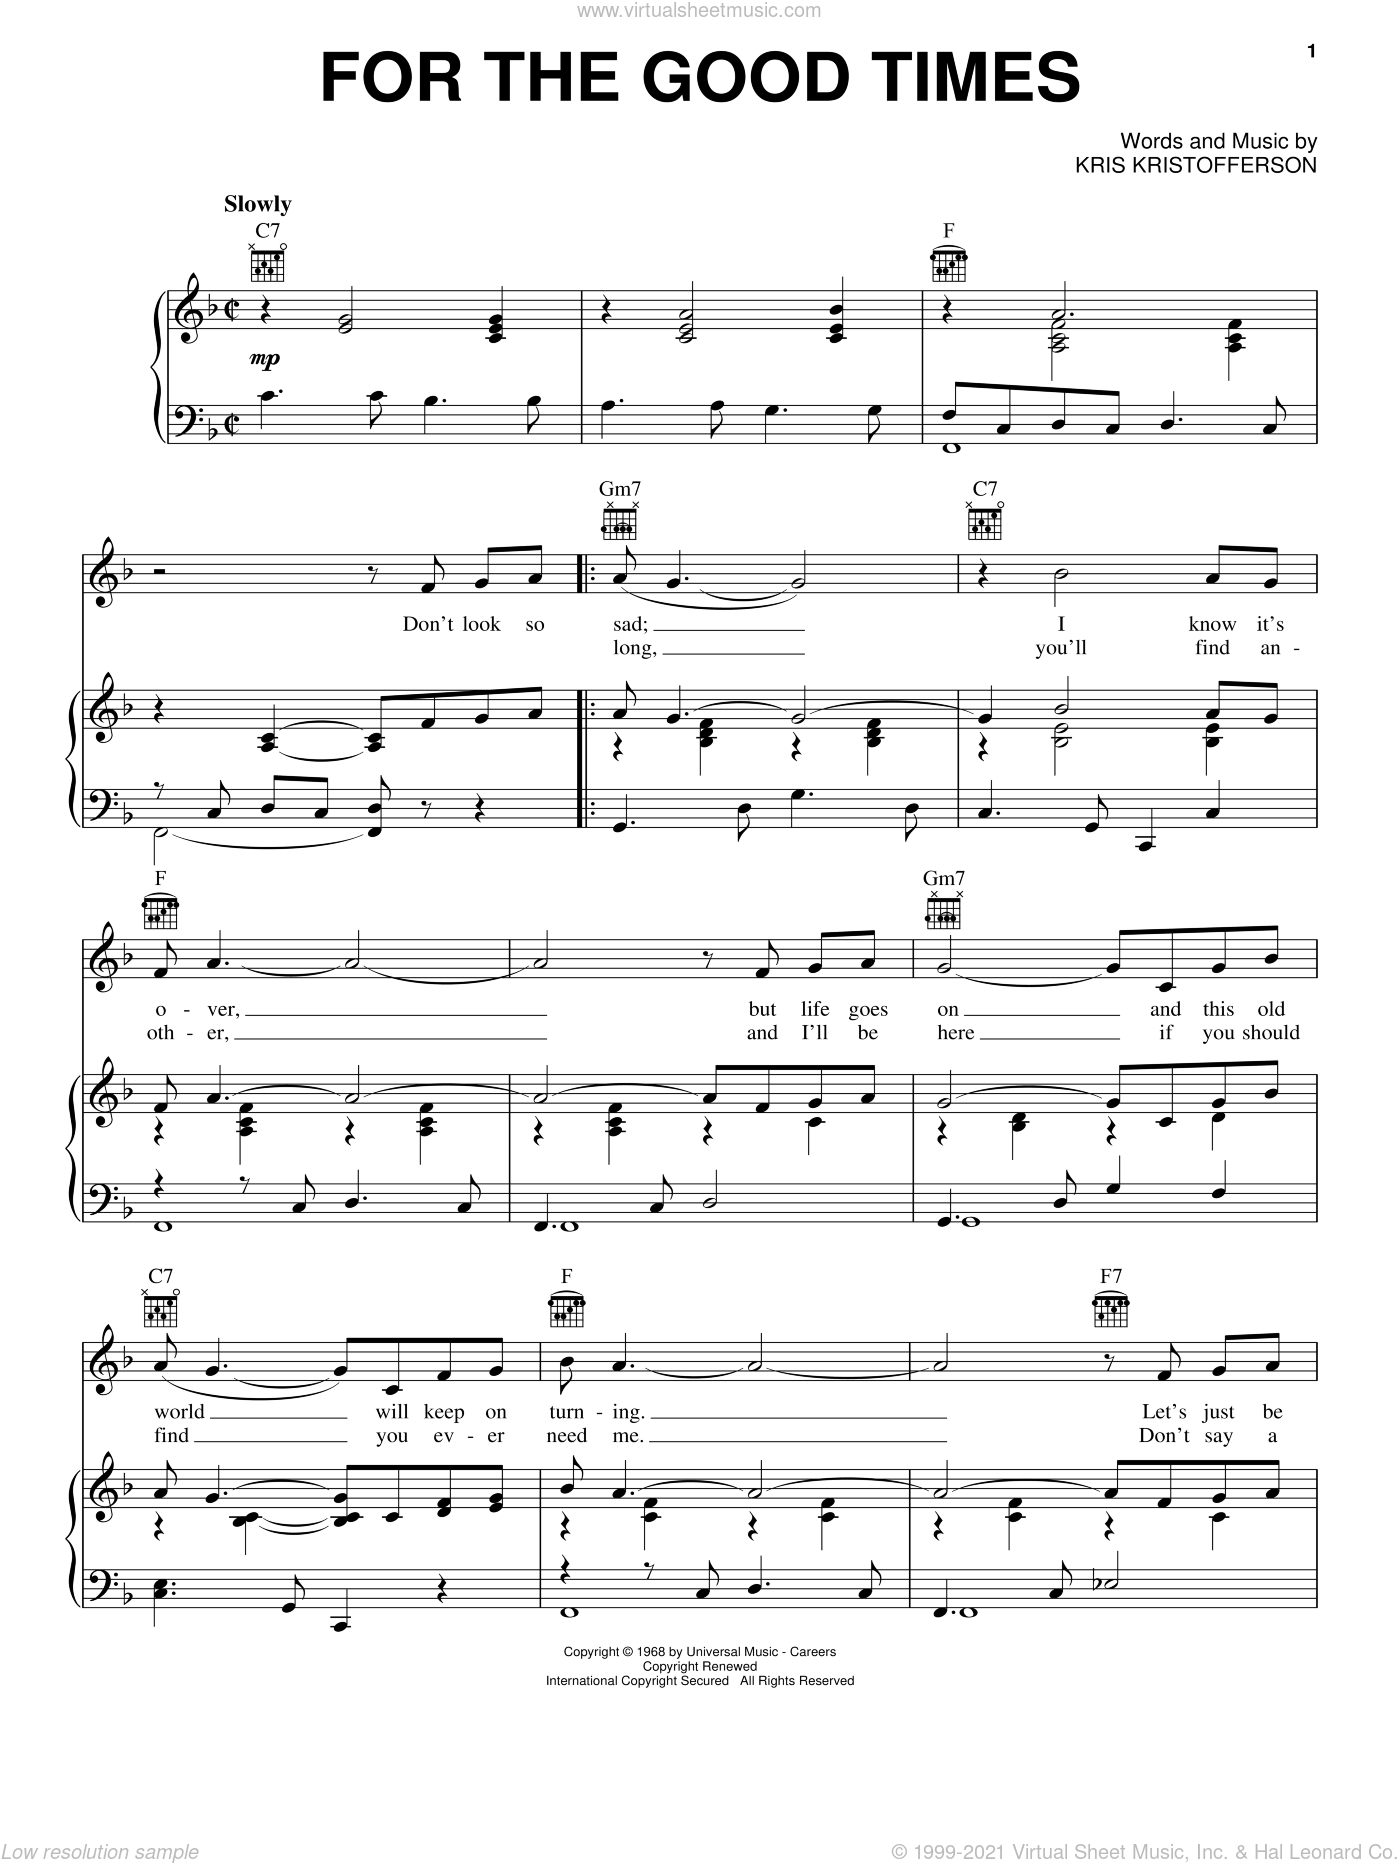 For The Good Times sheet music for voice, piano or guitar by Ray Price